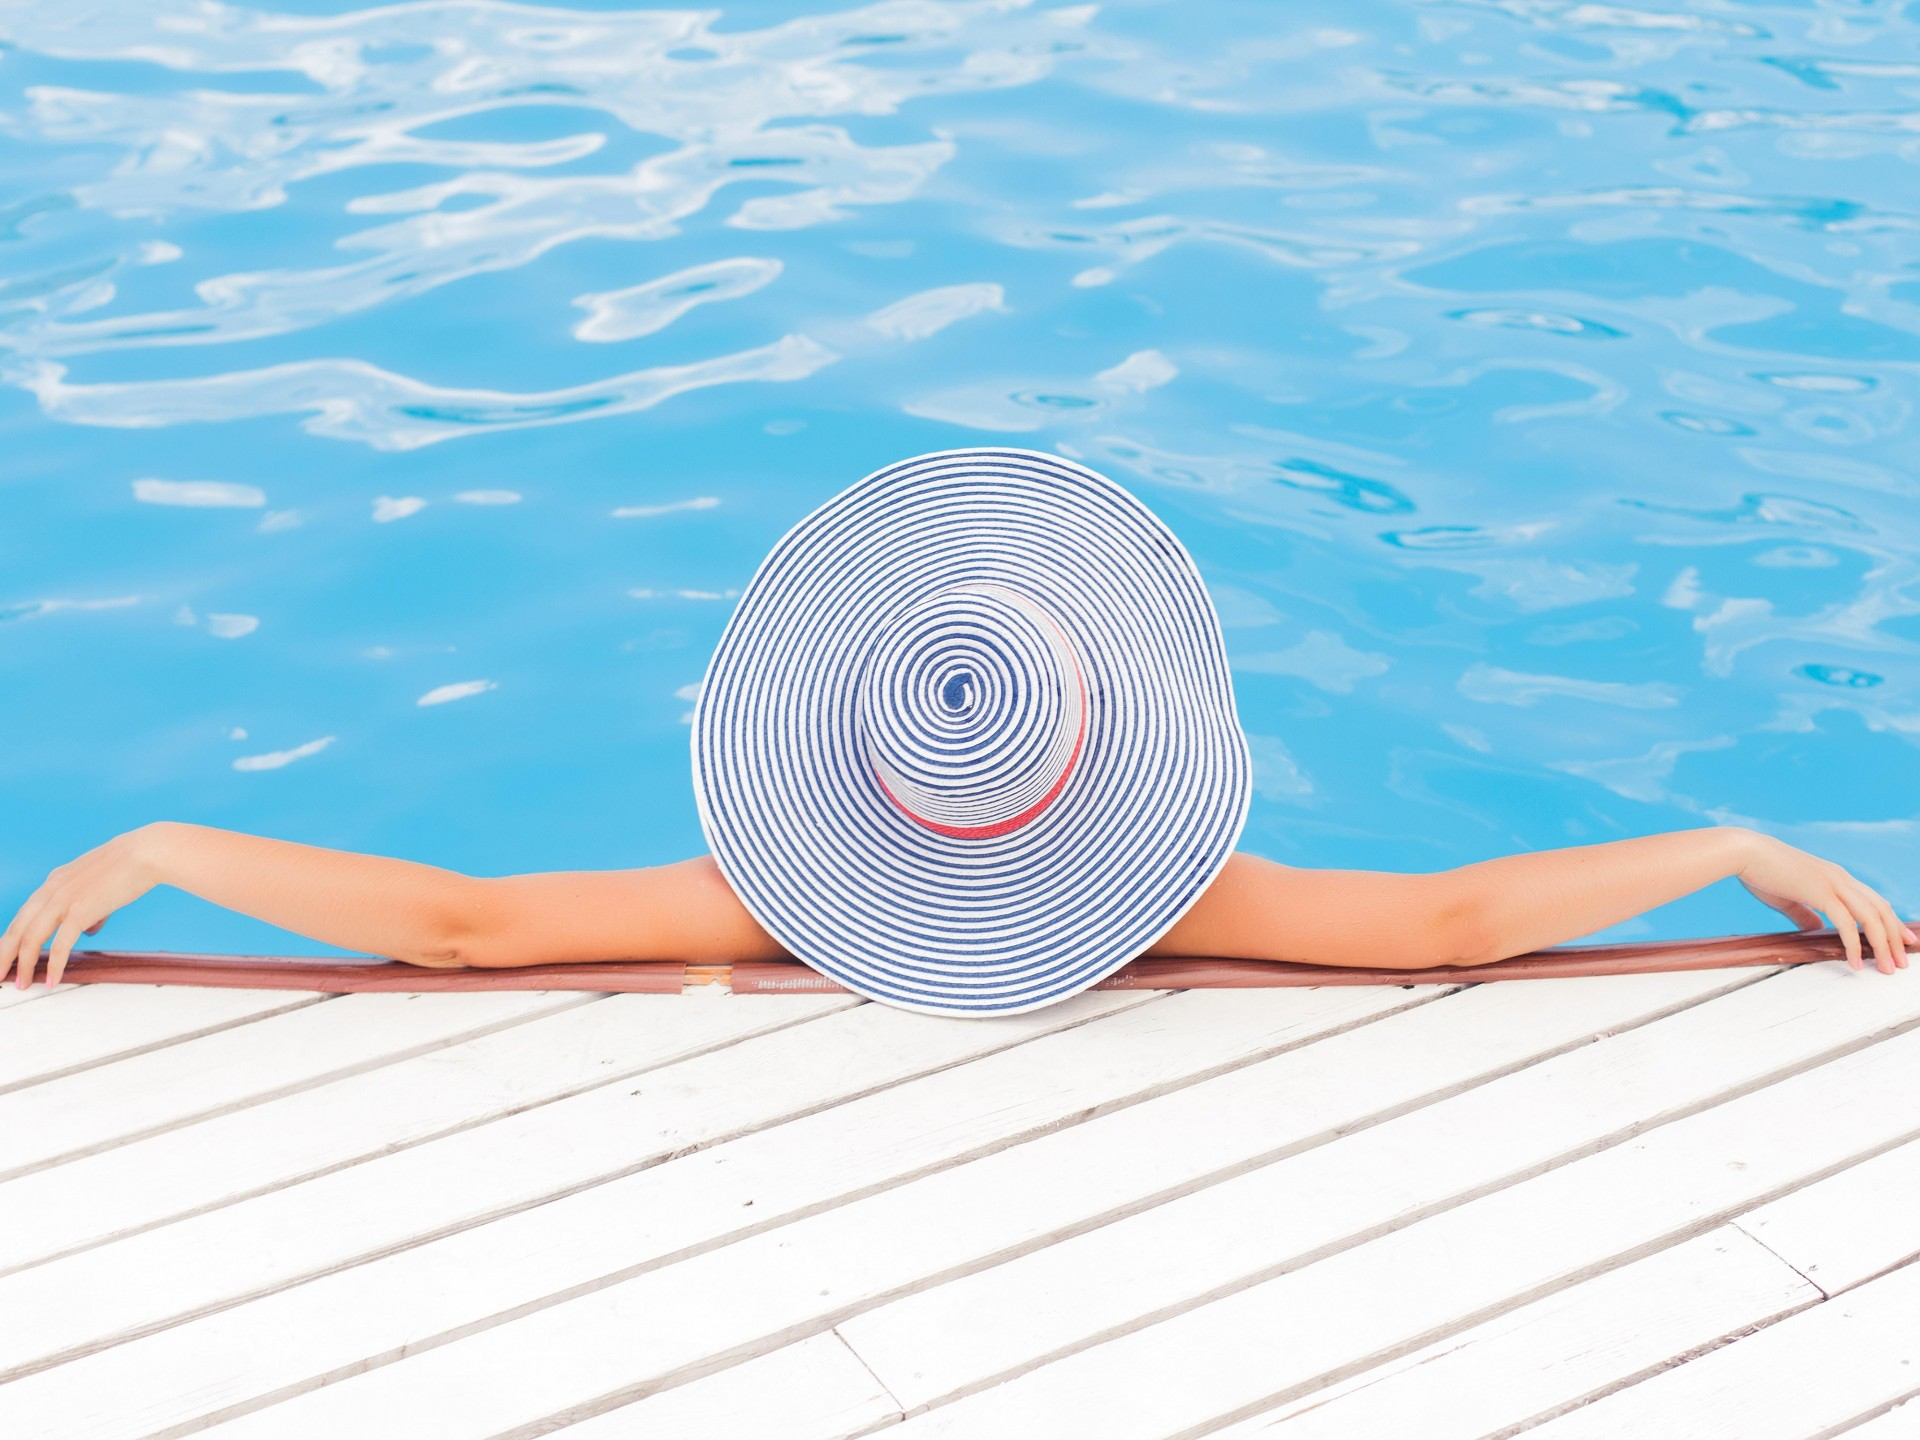 Pool Maintenance and Equipment Franchise - Newcastle